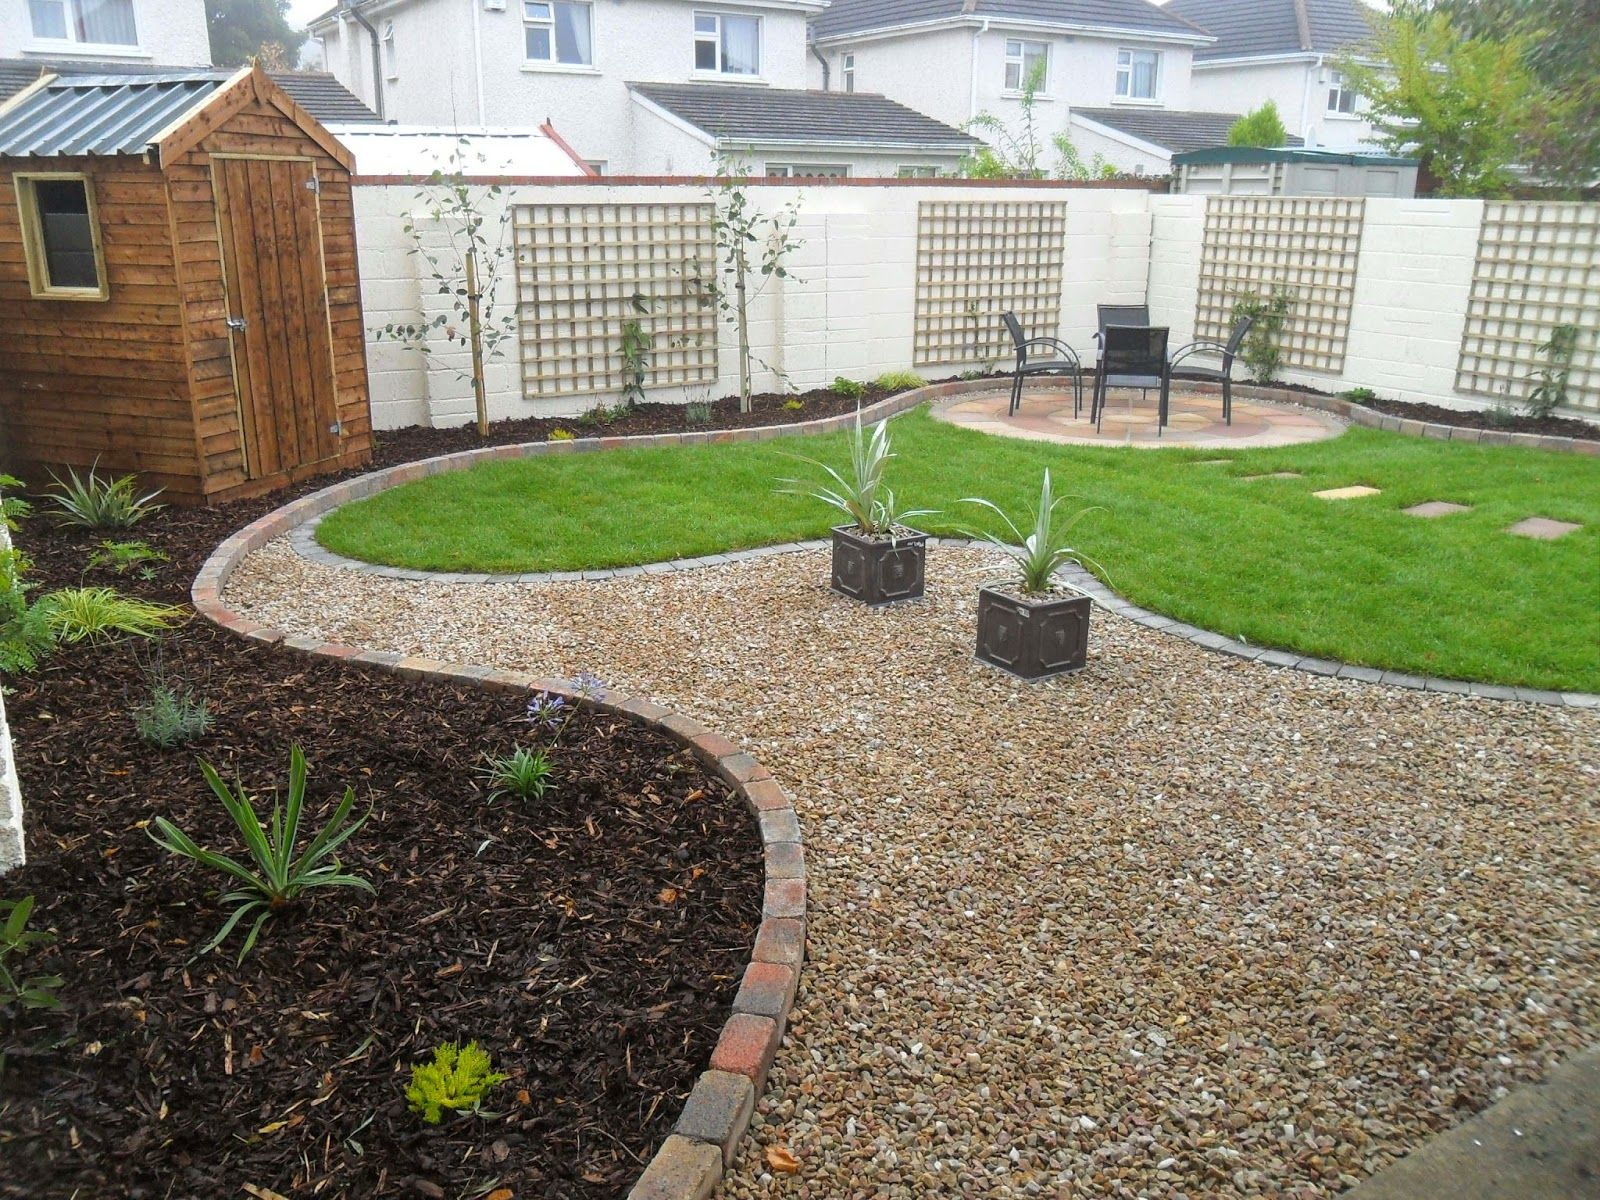 Articles from GreenArt Landscaping